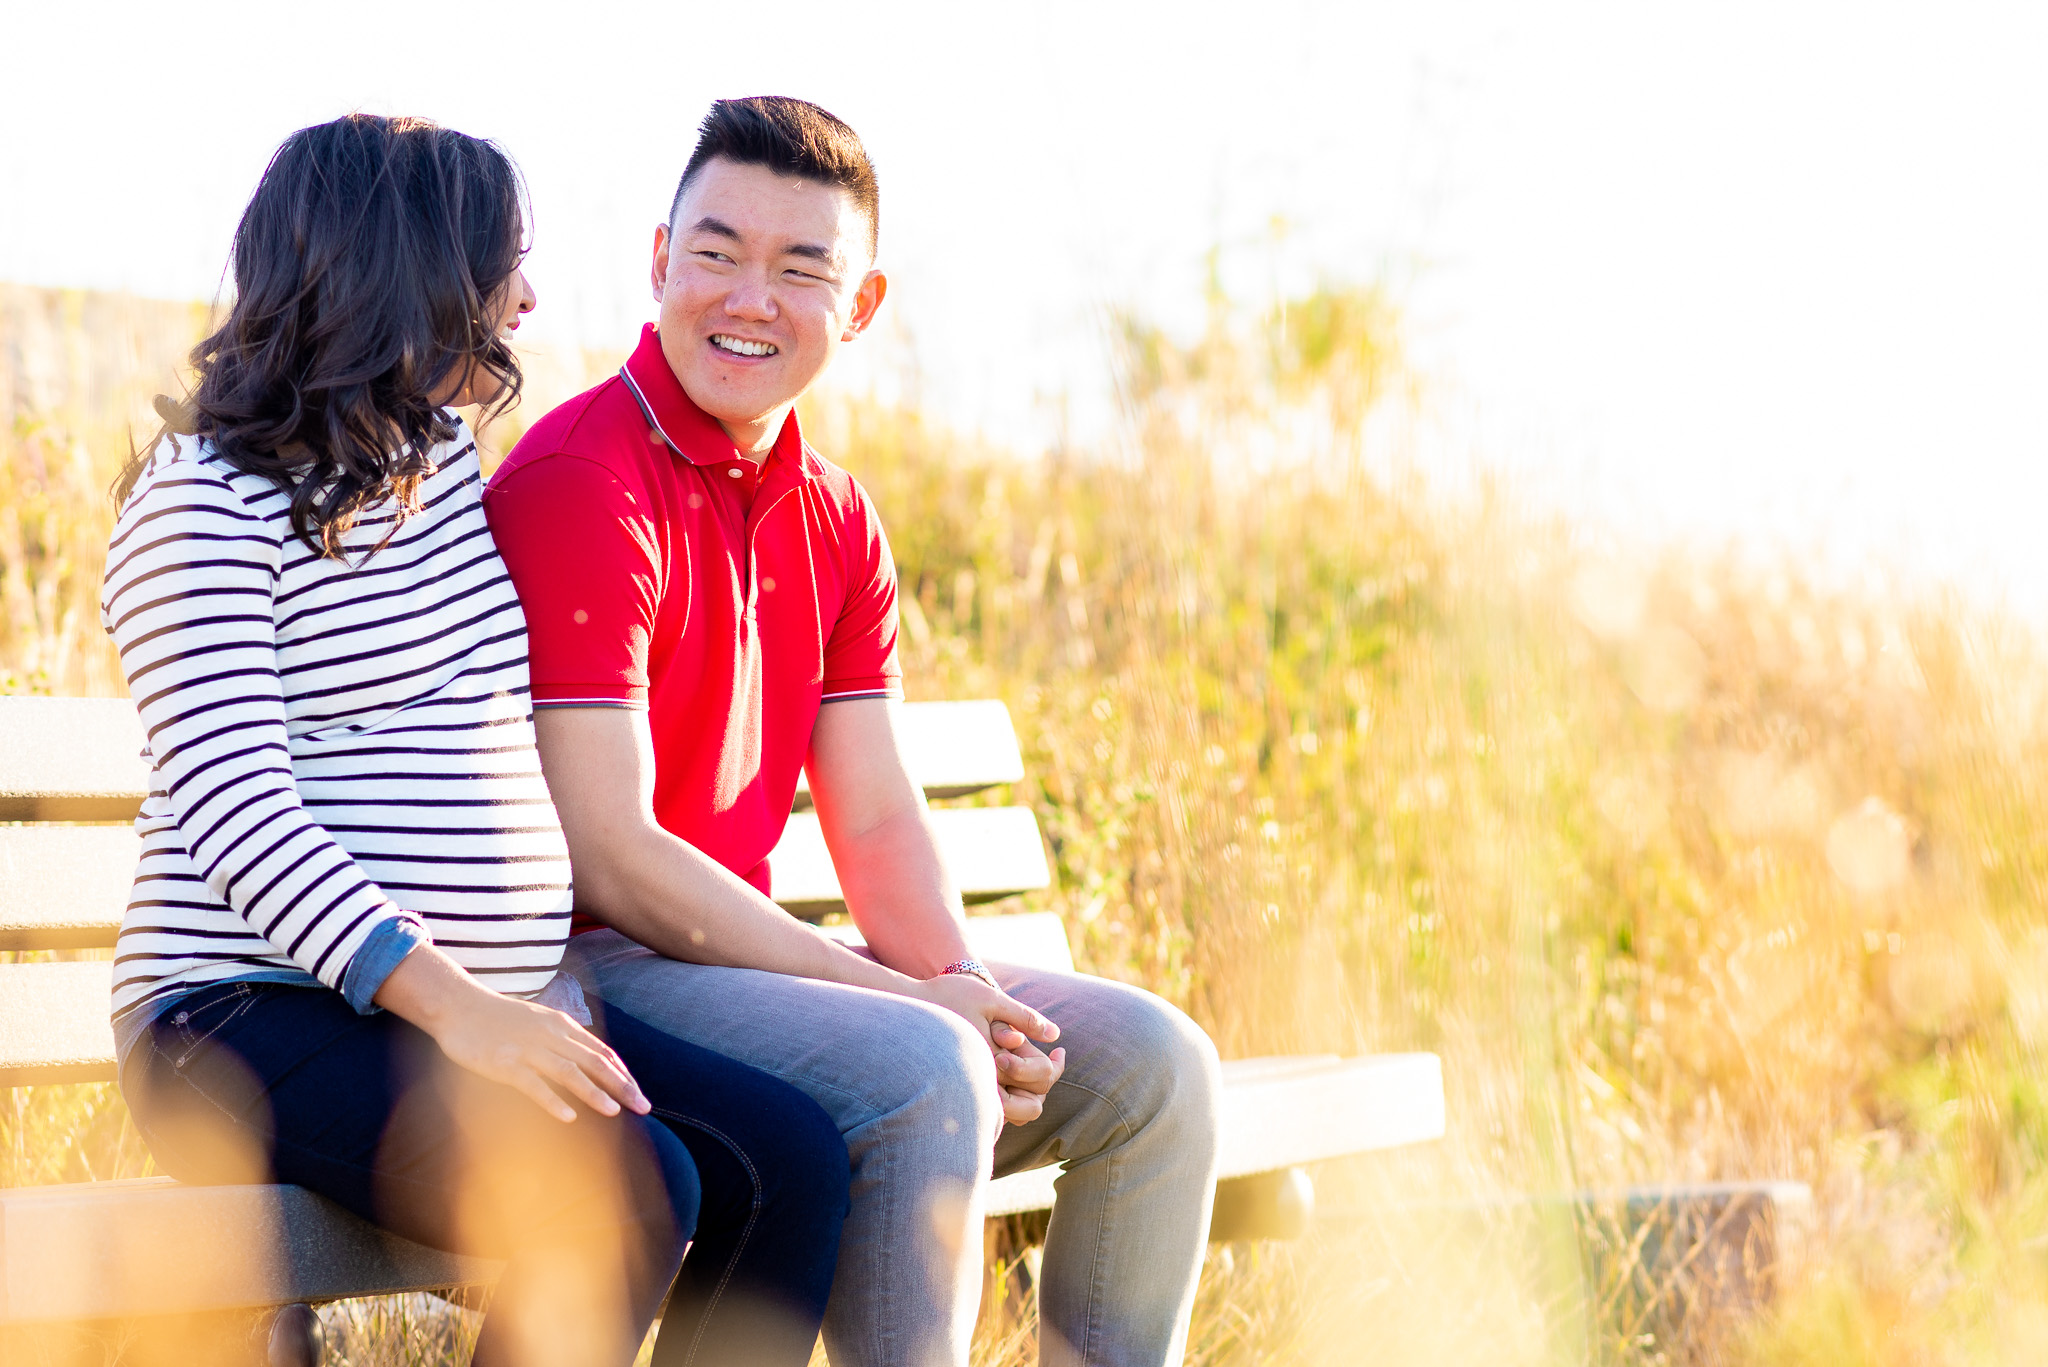 Evening Sunset Maternity Photo Shoot-8.jpg